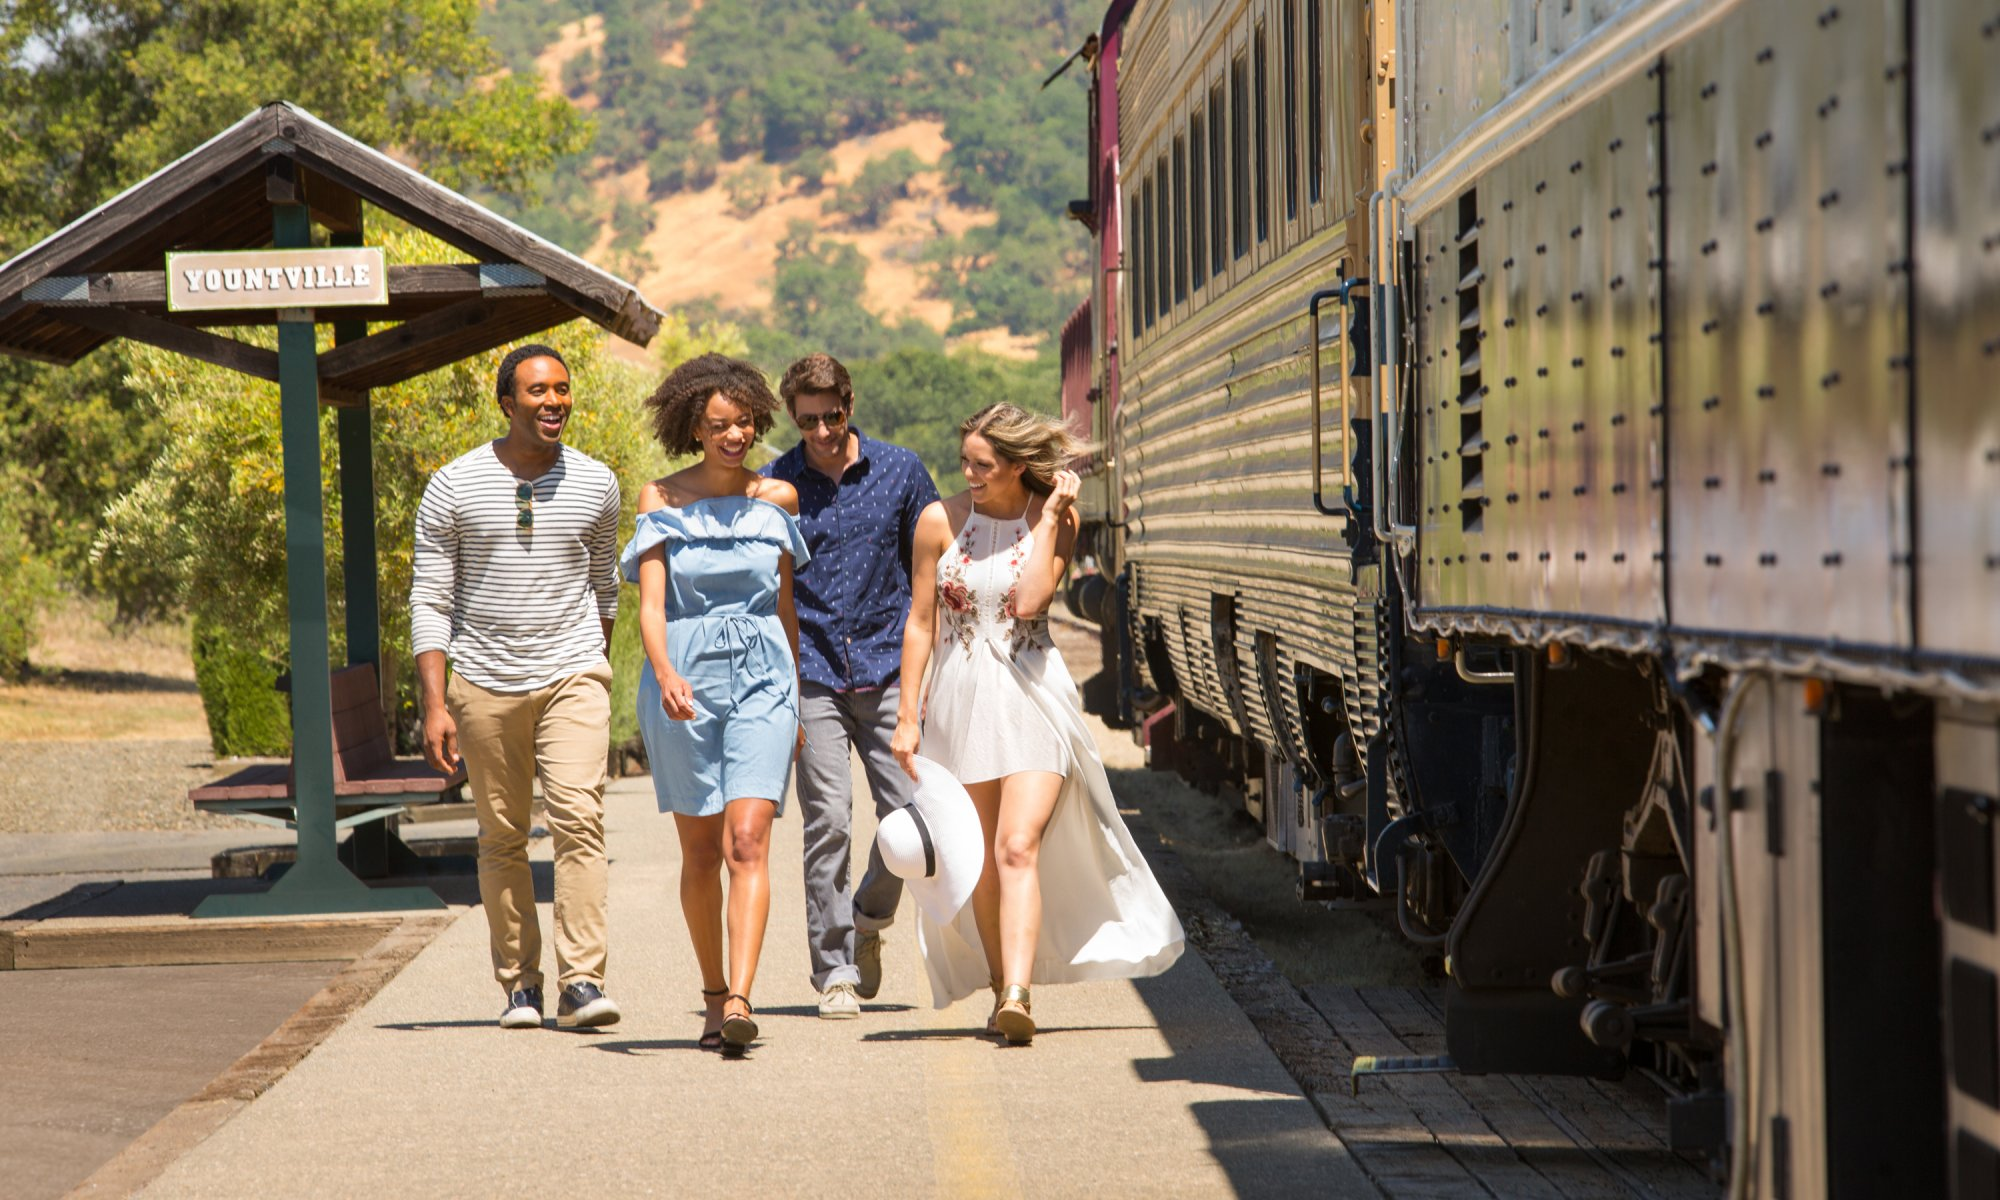 4 people laughing and walking beside the Napa Valley Wine Train at the Yountville Station Stop